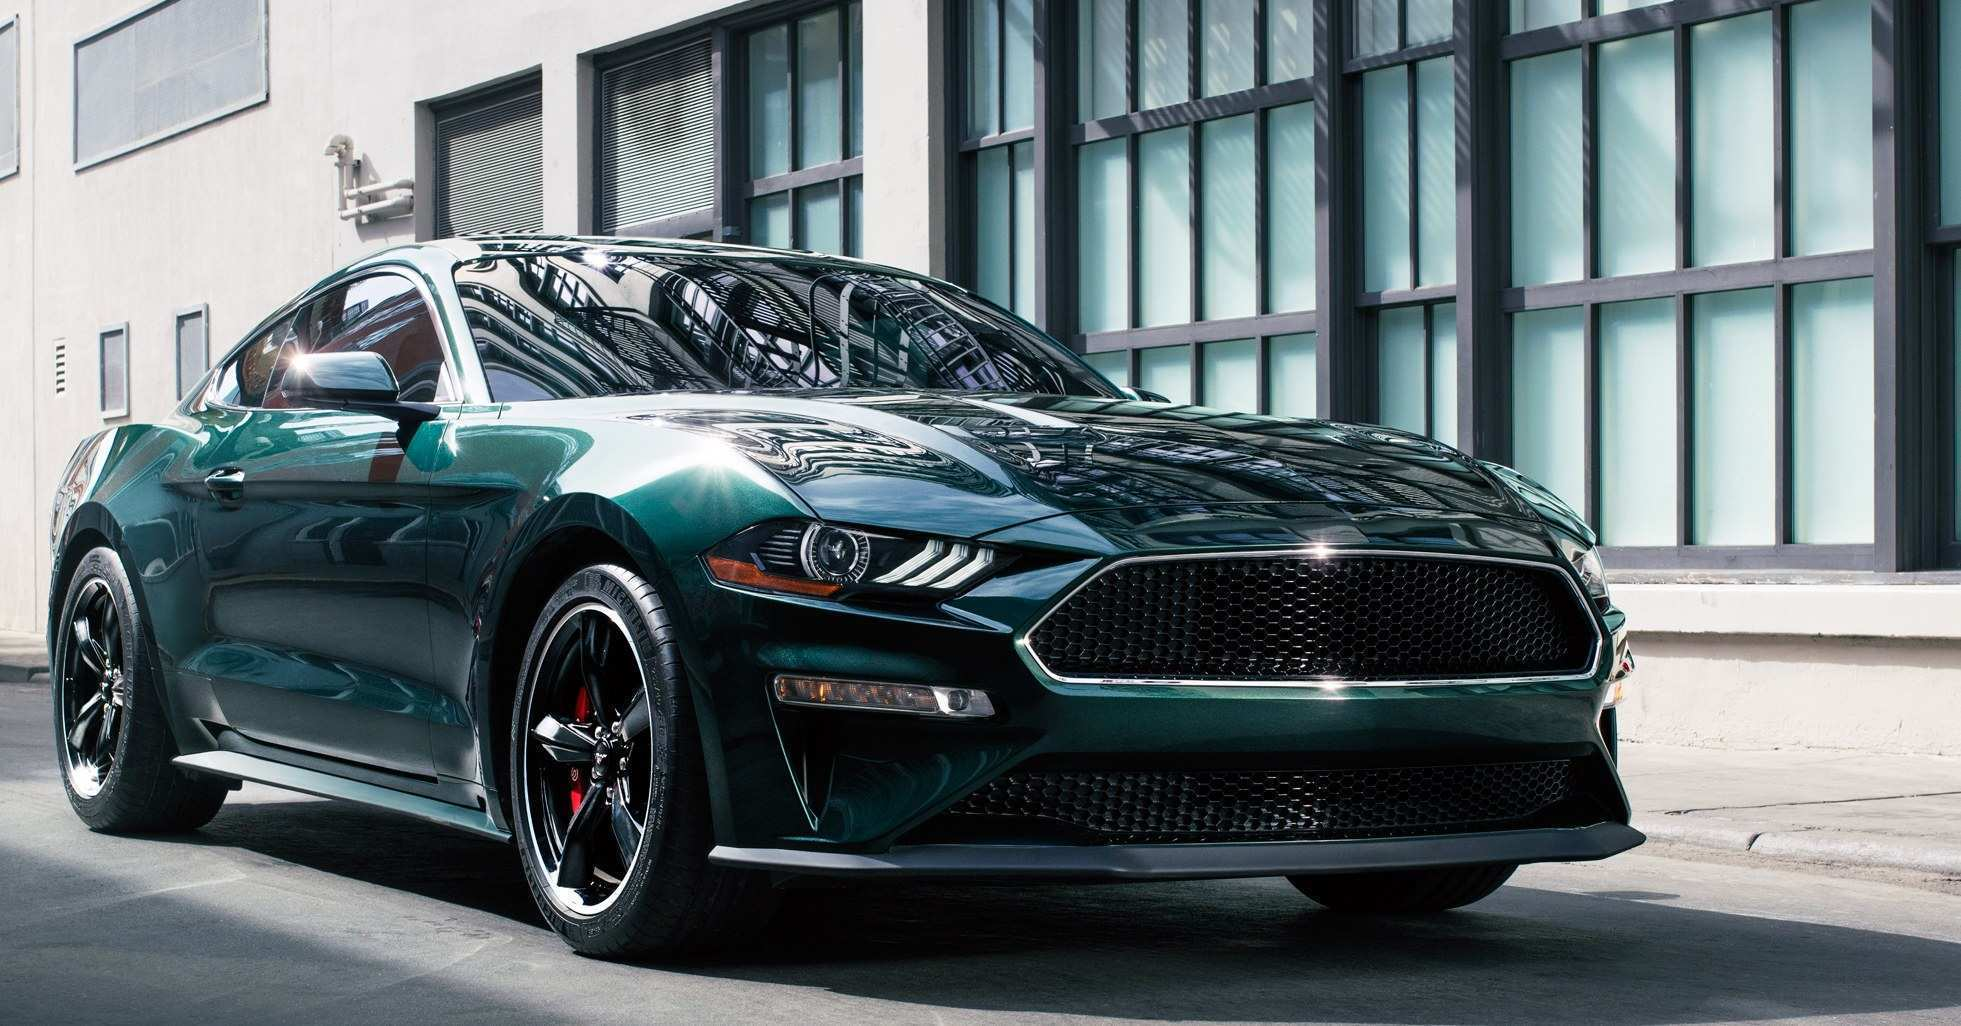 77 New The Ford Bullitt 2019 For Sale First Drive Price Performance And Review Price and Review for The Ford Bullitt 2019 For Sale First Drive Price Performance And Review